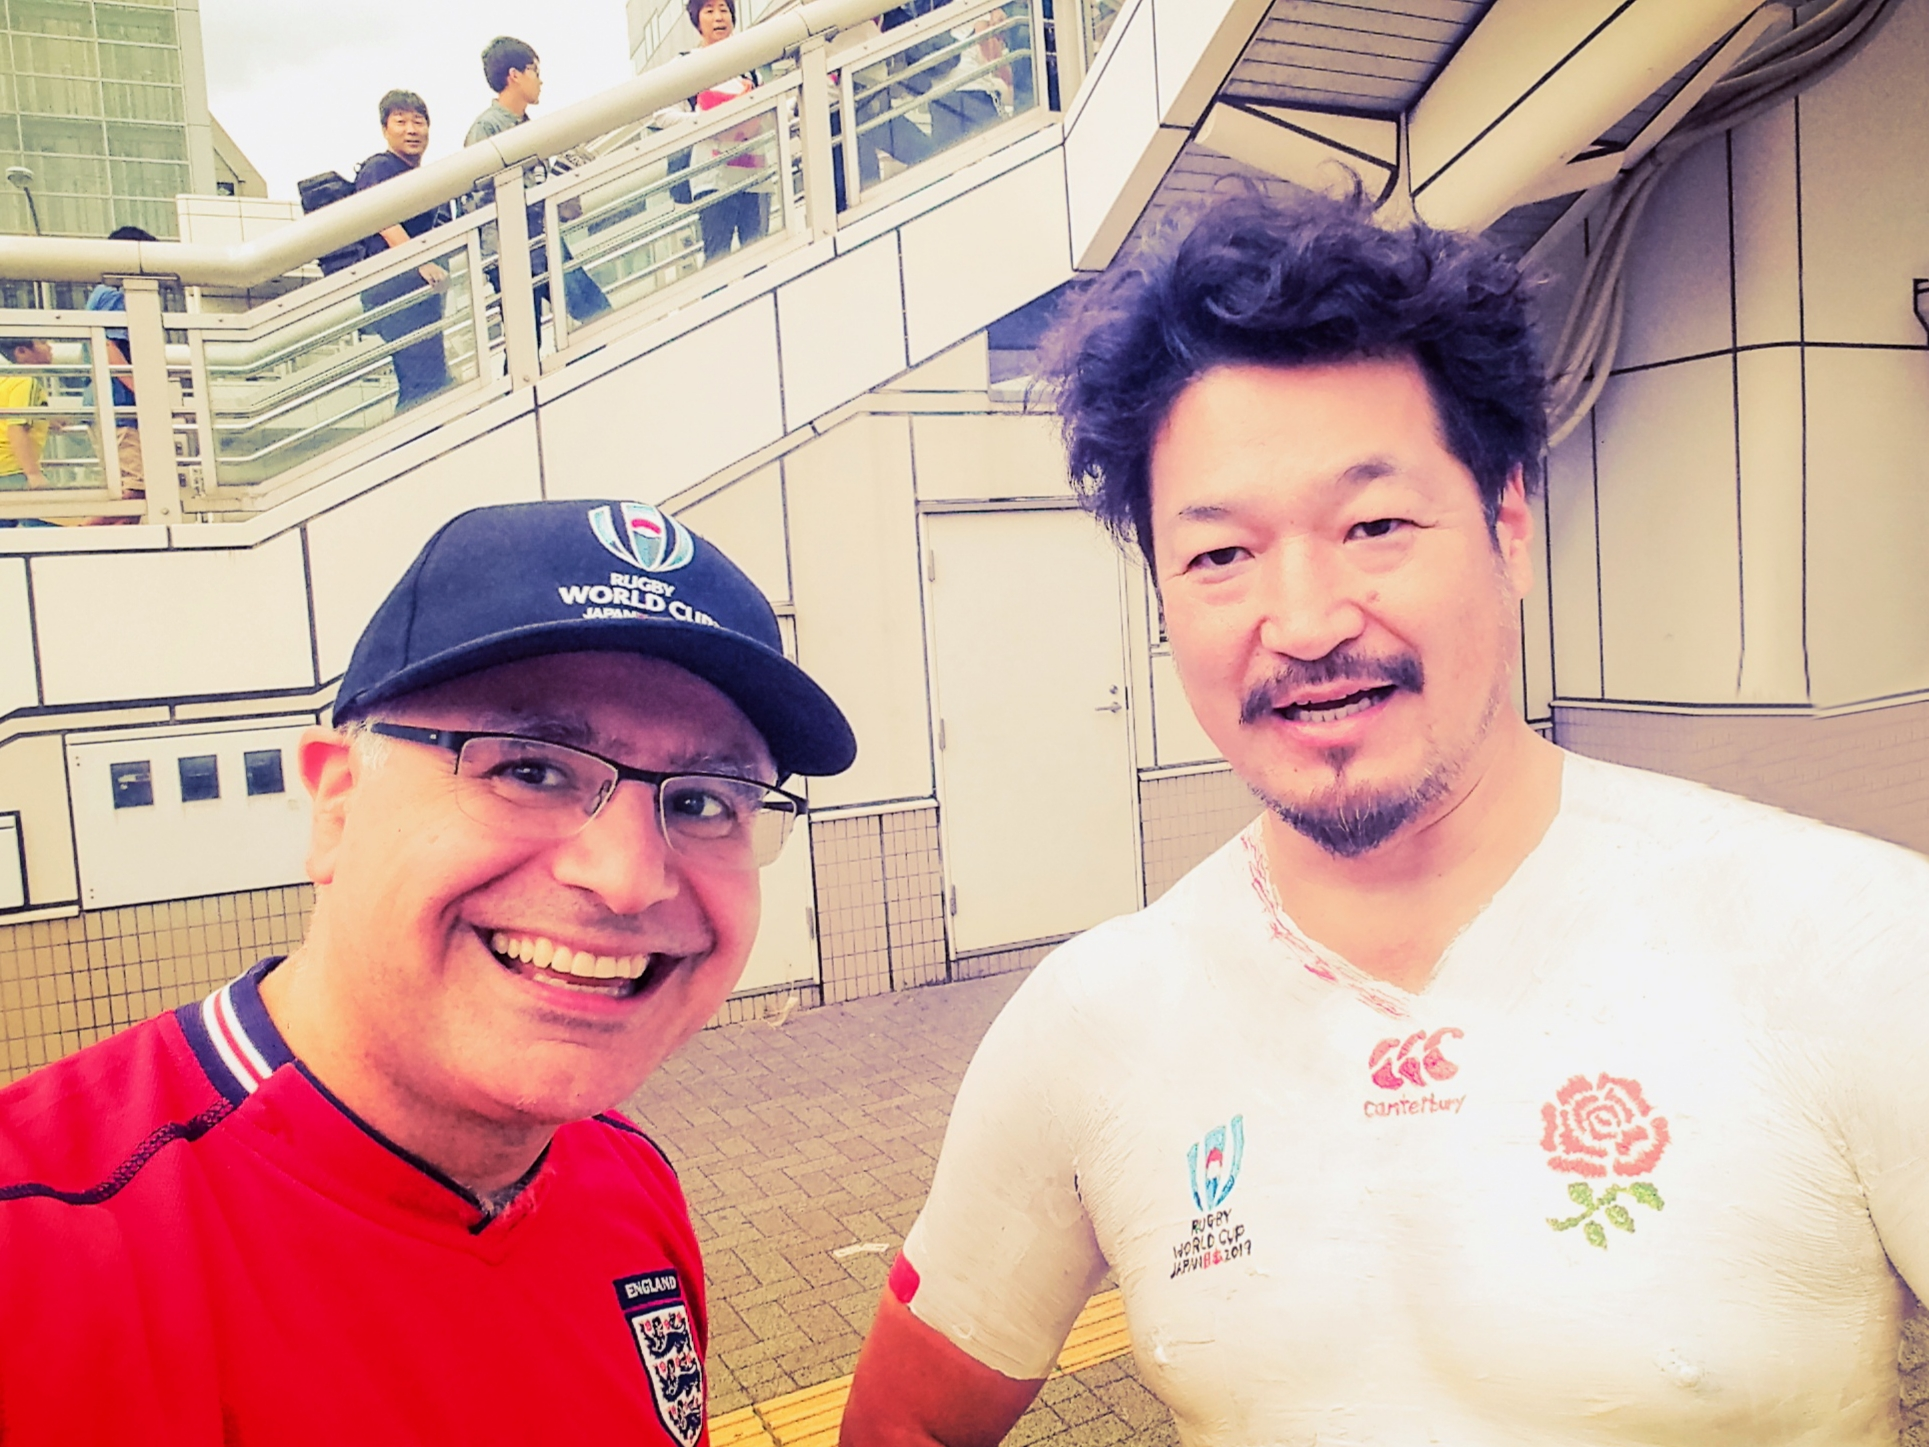 Bak-san - Japanese Rugby Superfan - with Mac, Founder and Lead Guide of Maction Planet